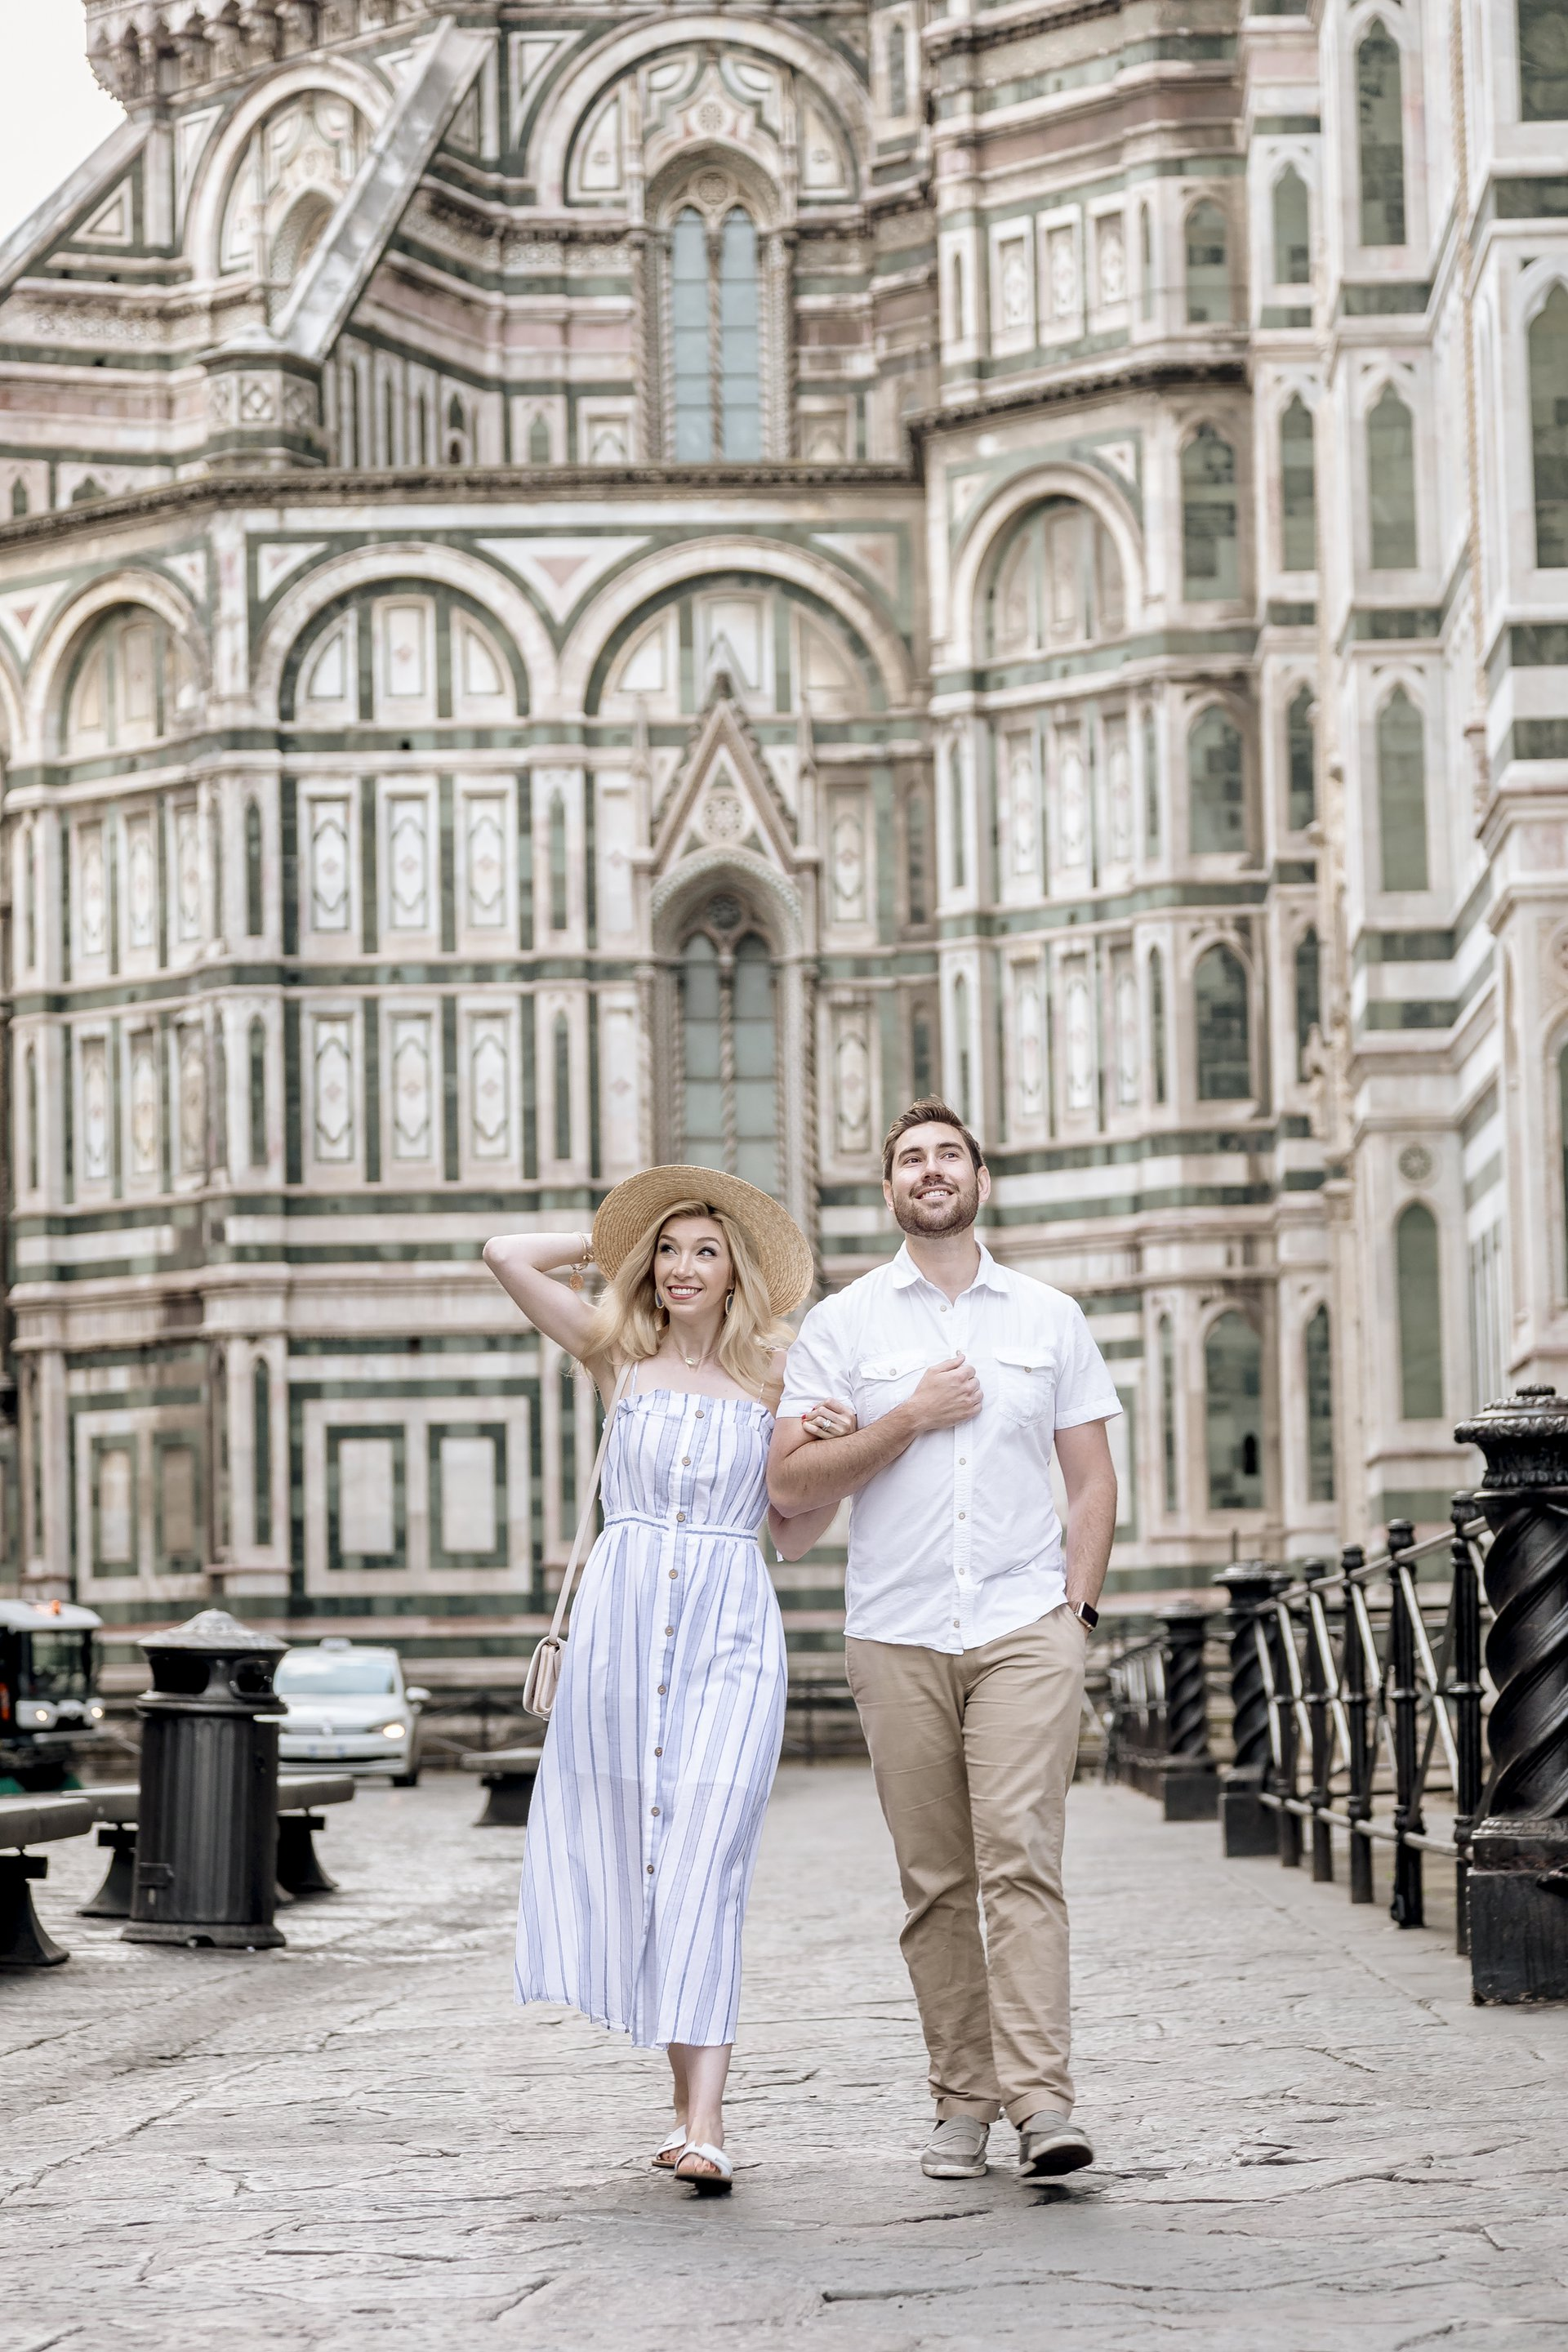 Florence-Italy-travel-story-Flytographer-13